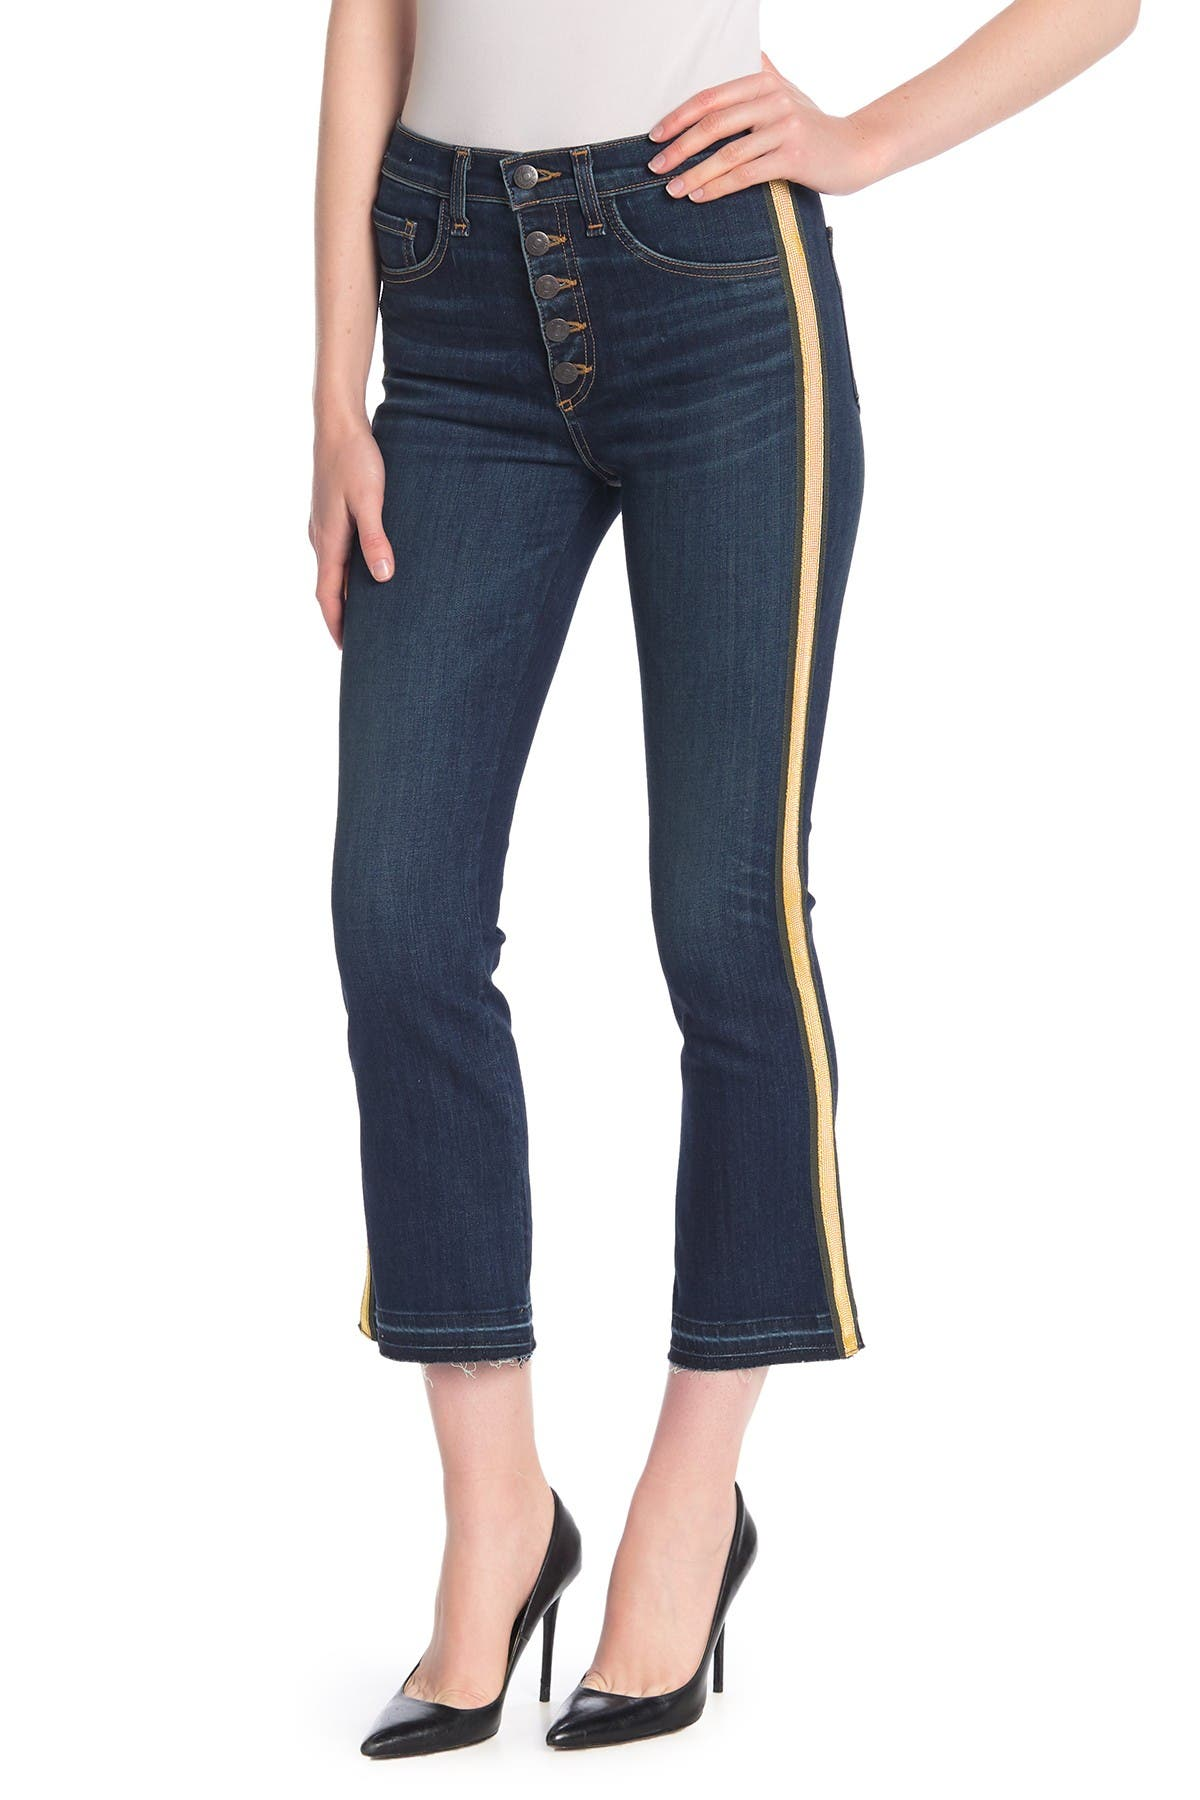 Image of VERONICA BEARD Carolyn Baby Boot Side Stripe Jeans